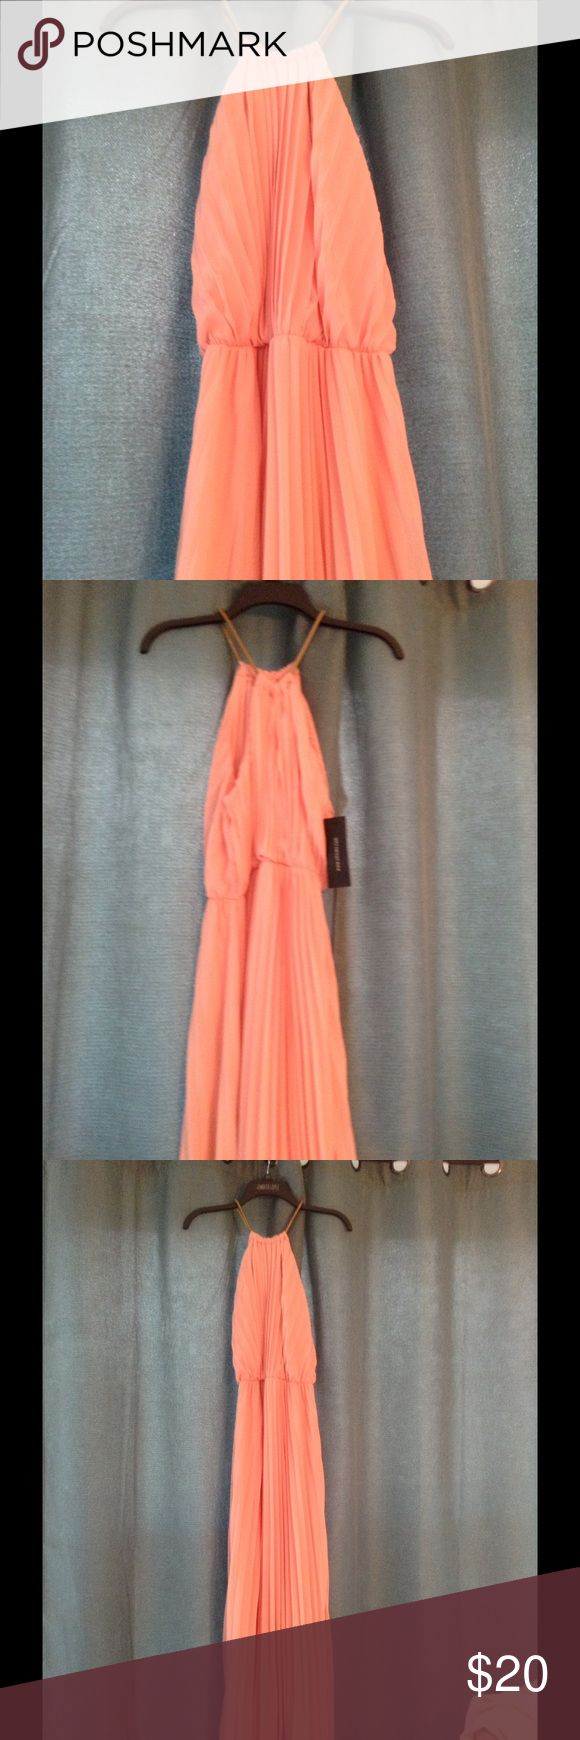 Coral maxi dress New with tags Dresses Maxi